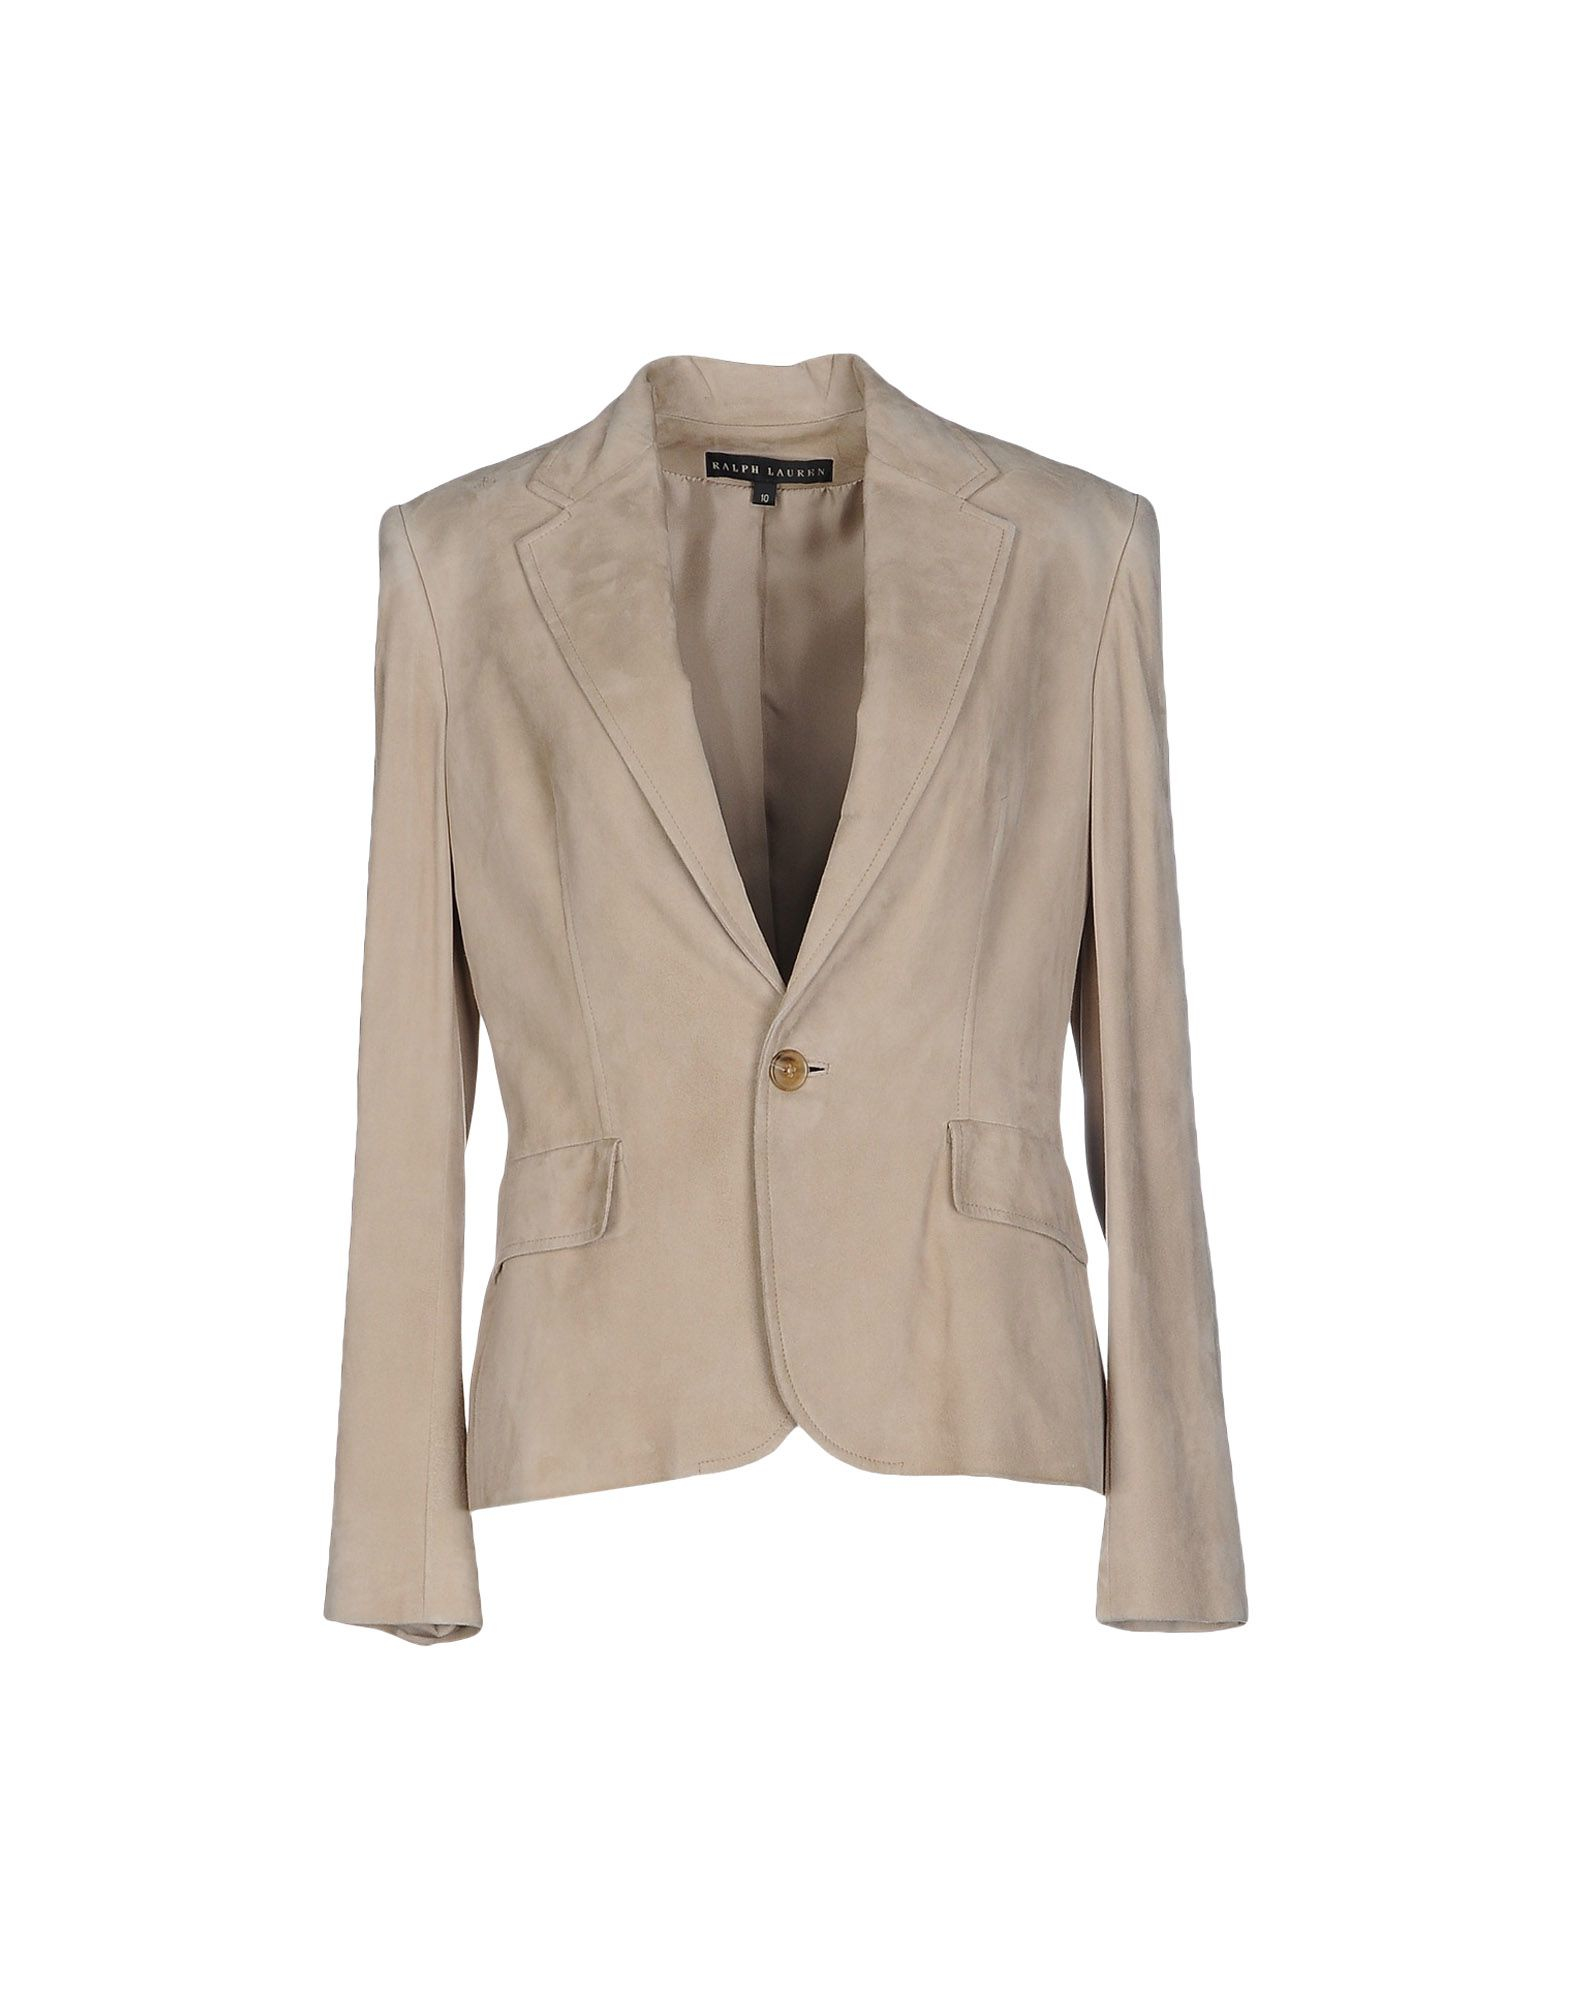 Find great deals on eBay for beige blazer. Shop with confidence.